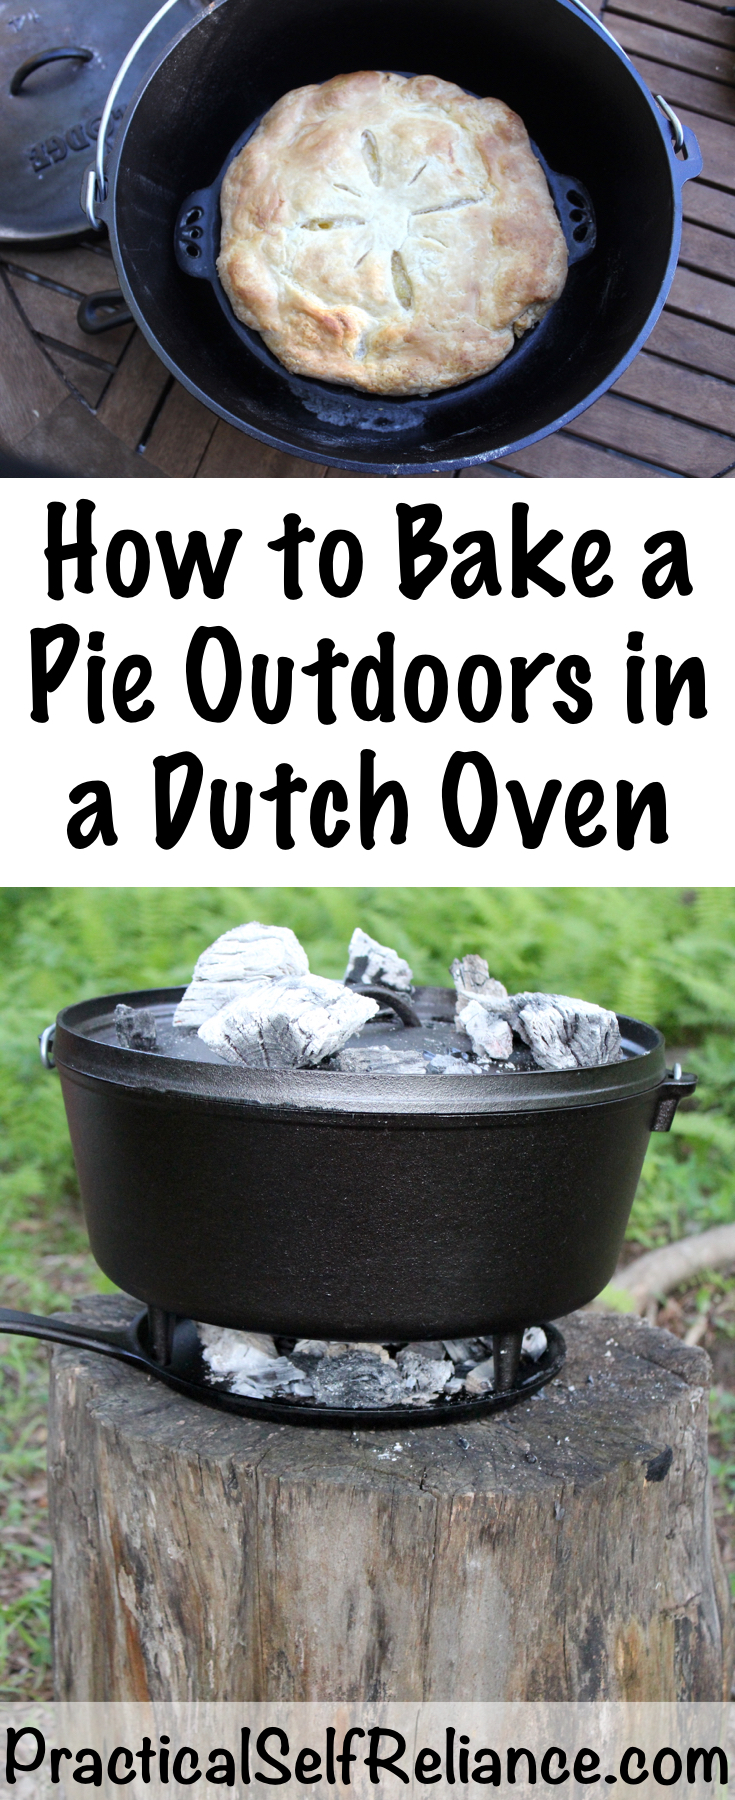 How to Bake a Pie Outdoors in a Dutch Oven ~ Campfire Cooking